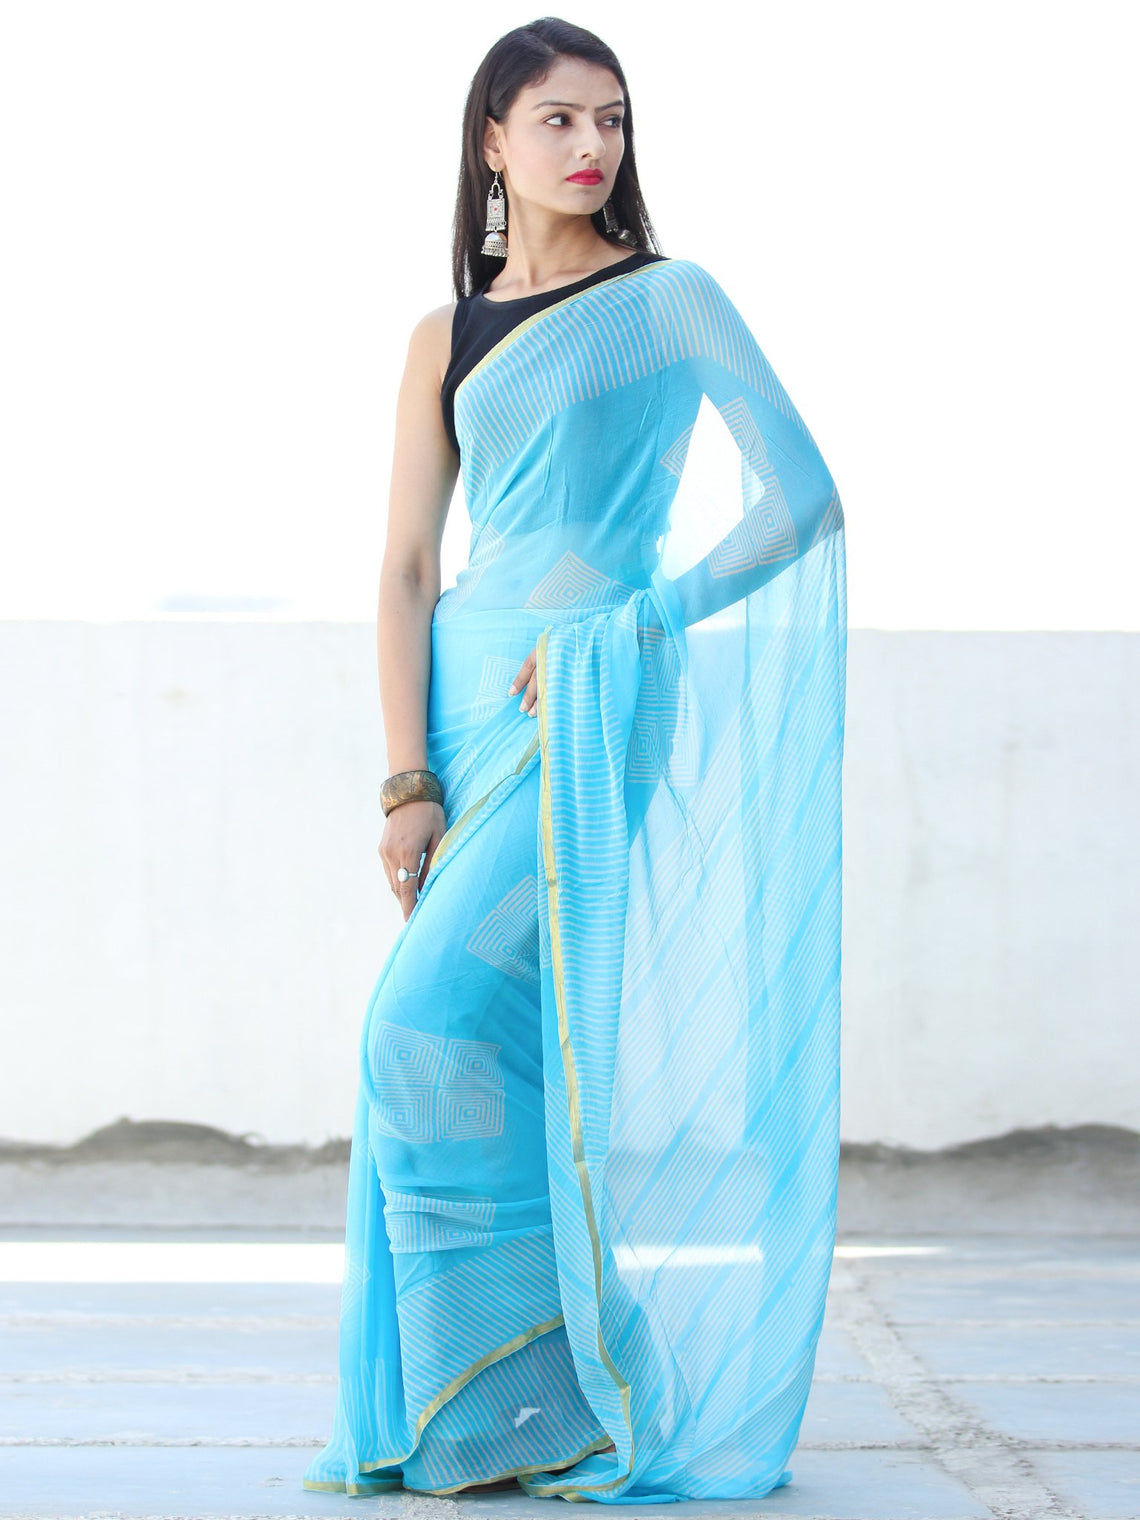 Sky Blue White Hand Block Printed Chiffon Saree with Zari Border - S031703921